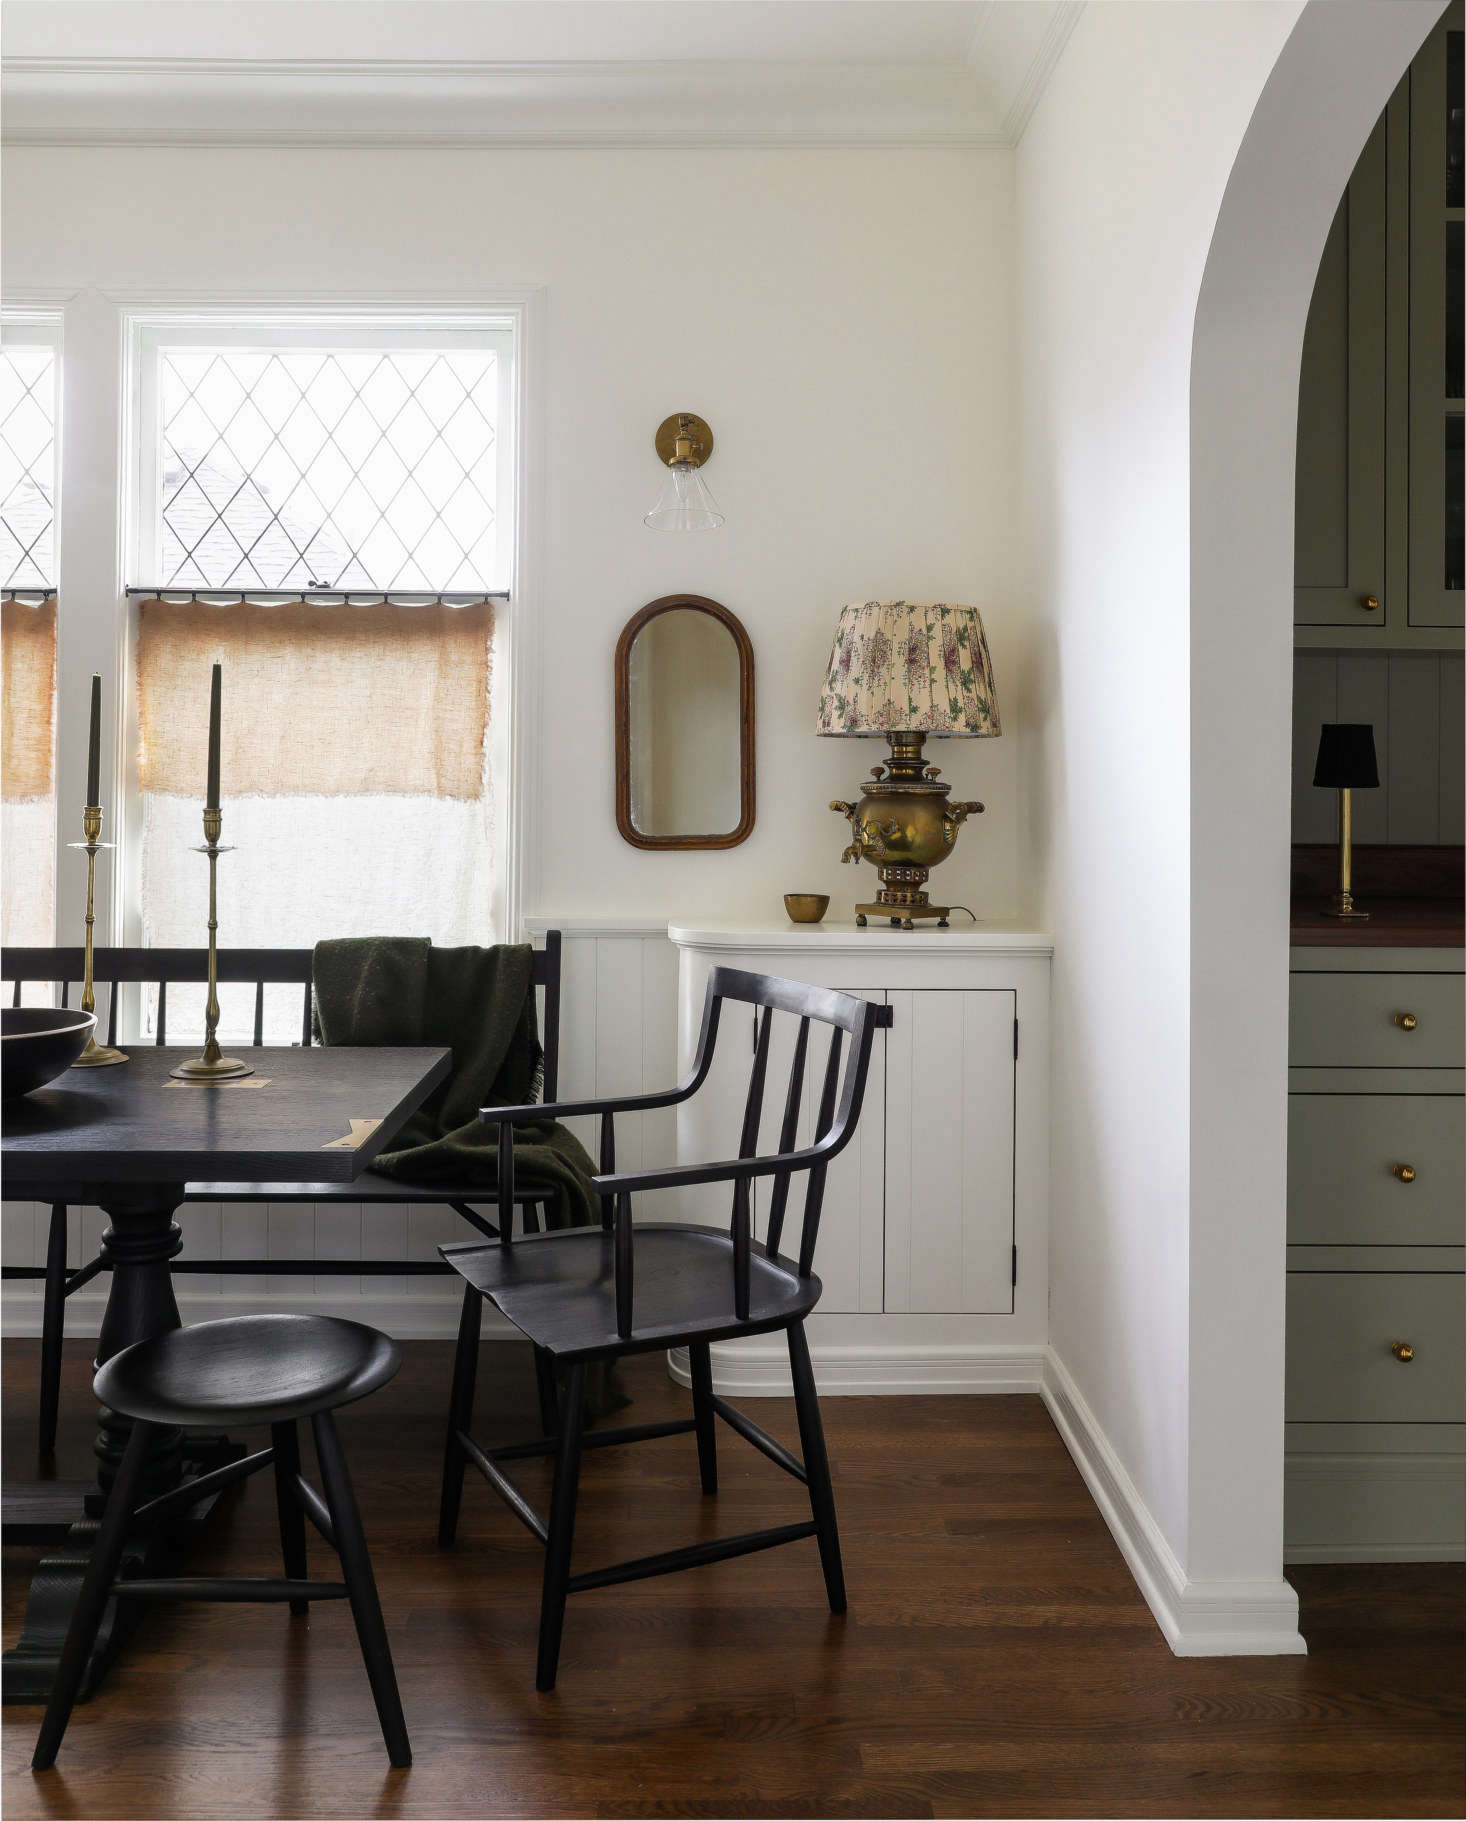 The dining table and chairs are Sawkille designs: the Springsteen Trestle Table, Senate Chair, and Dinner Stool.